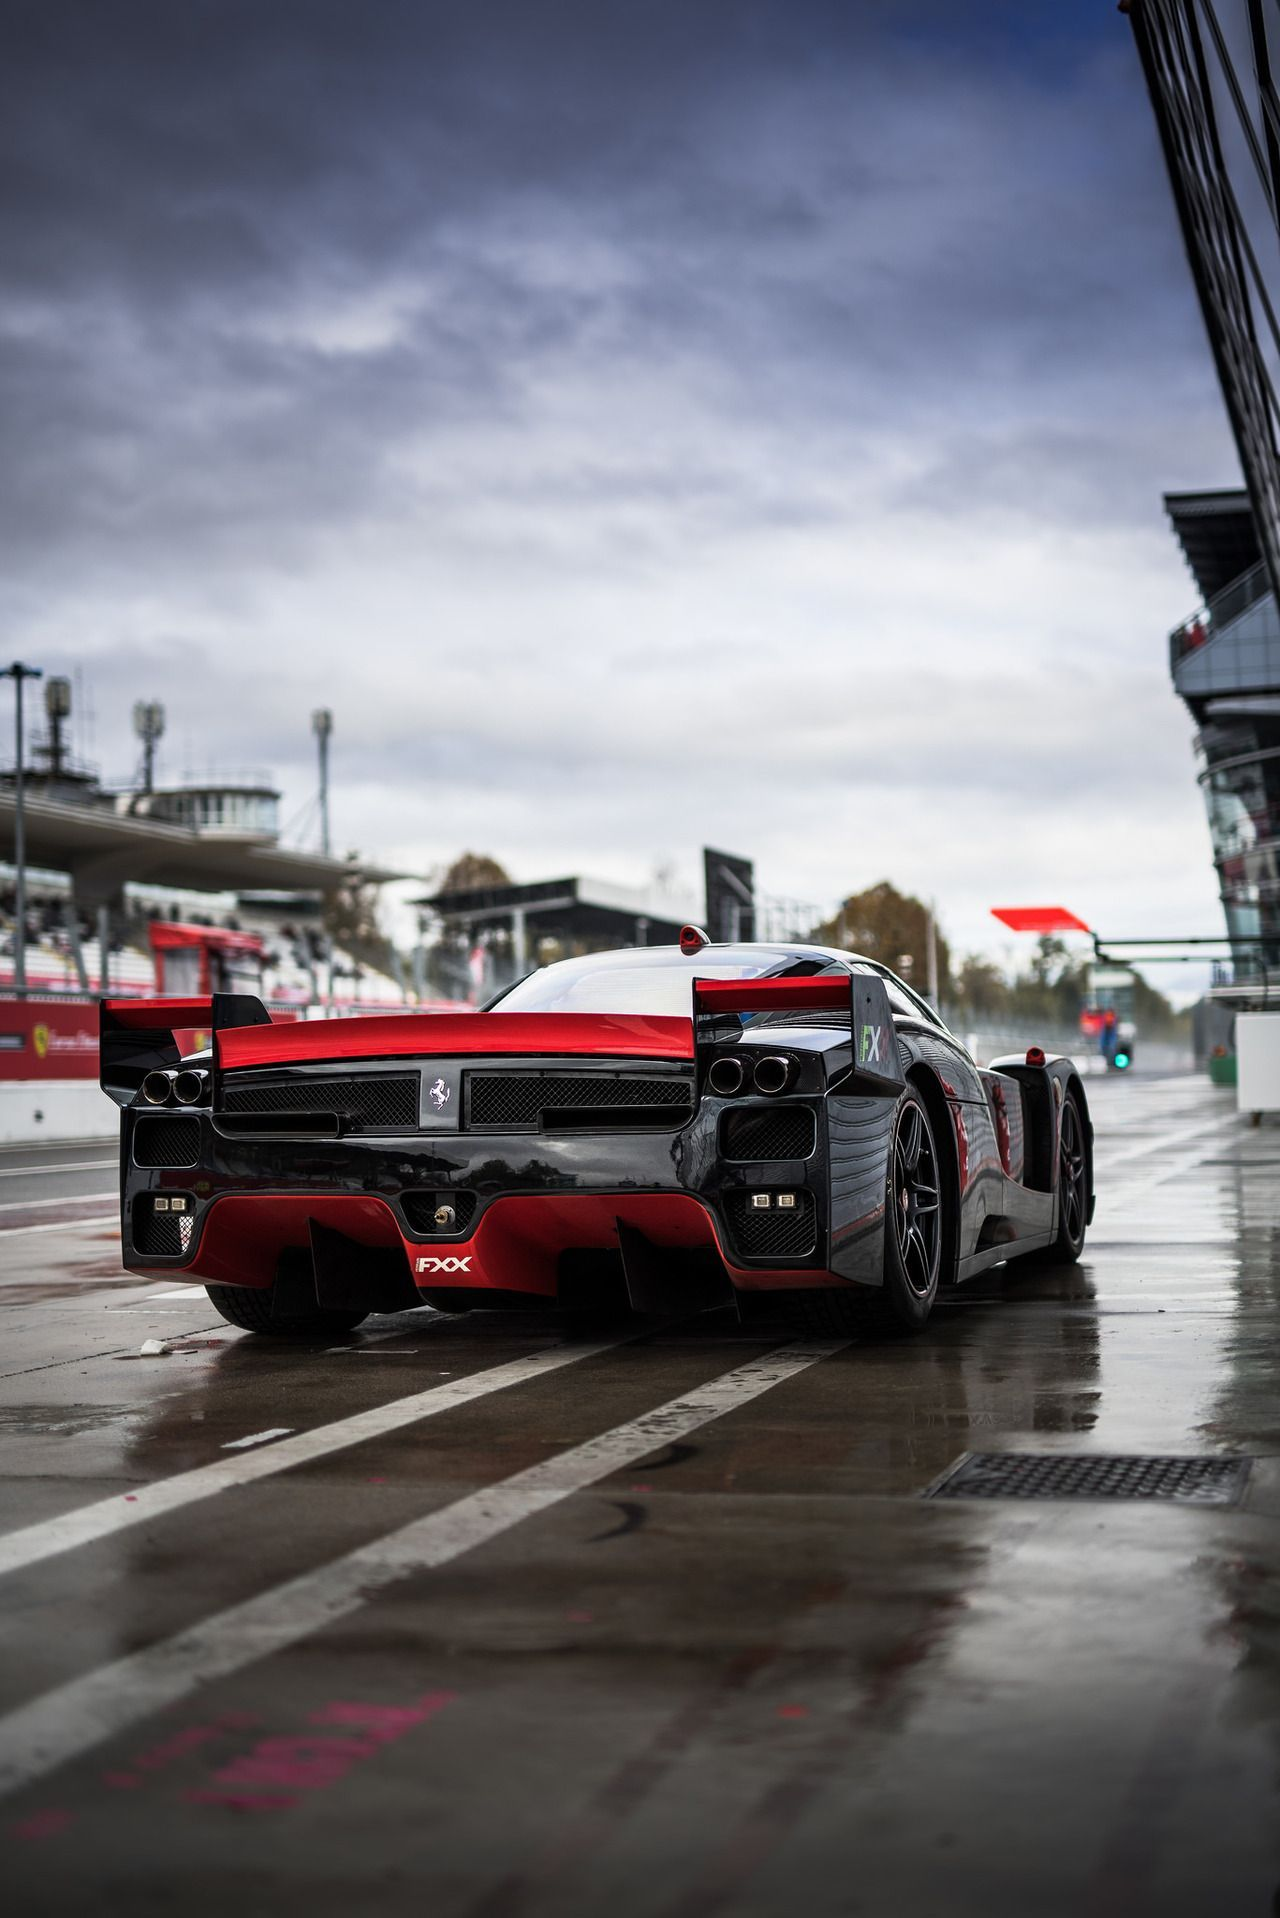 What Is The Best Car In The World These 20 Cars Are More Than Just Enjoyable They Re The Fastest Production Cars On Ferrari Fxx Car In The World Sports Cars